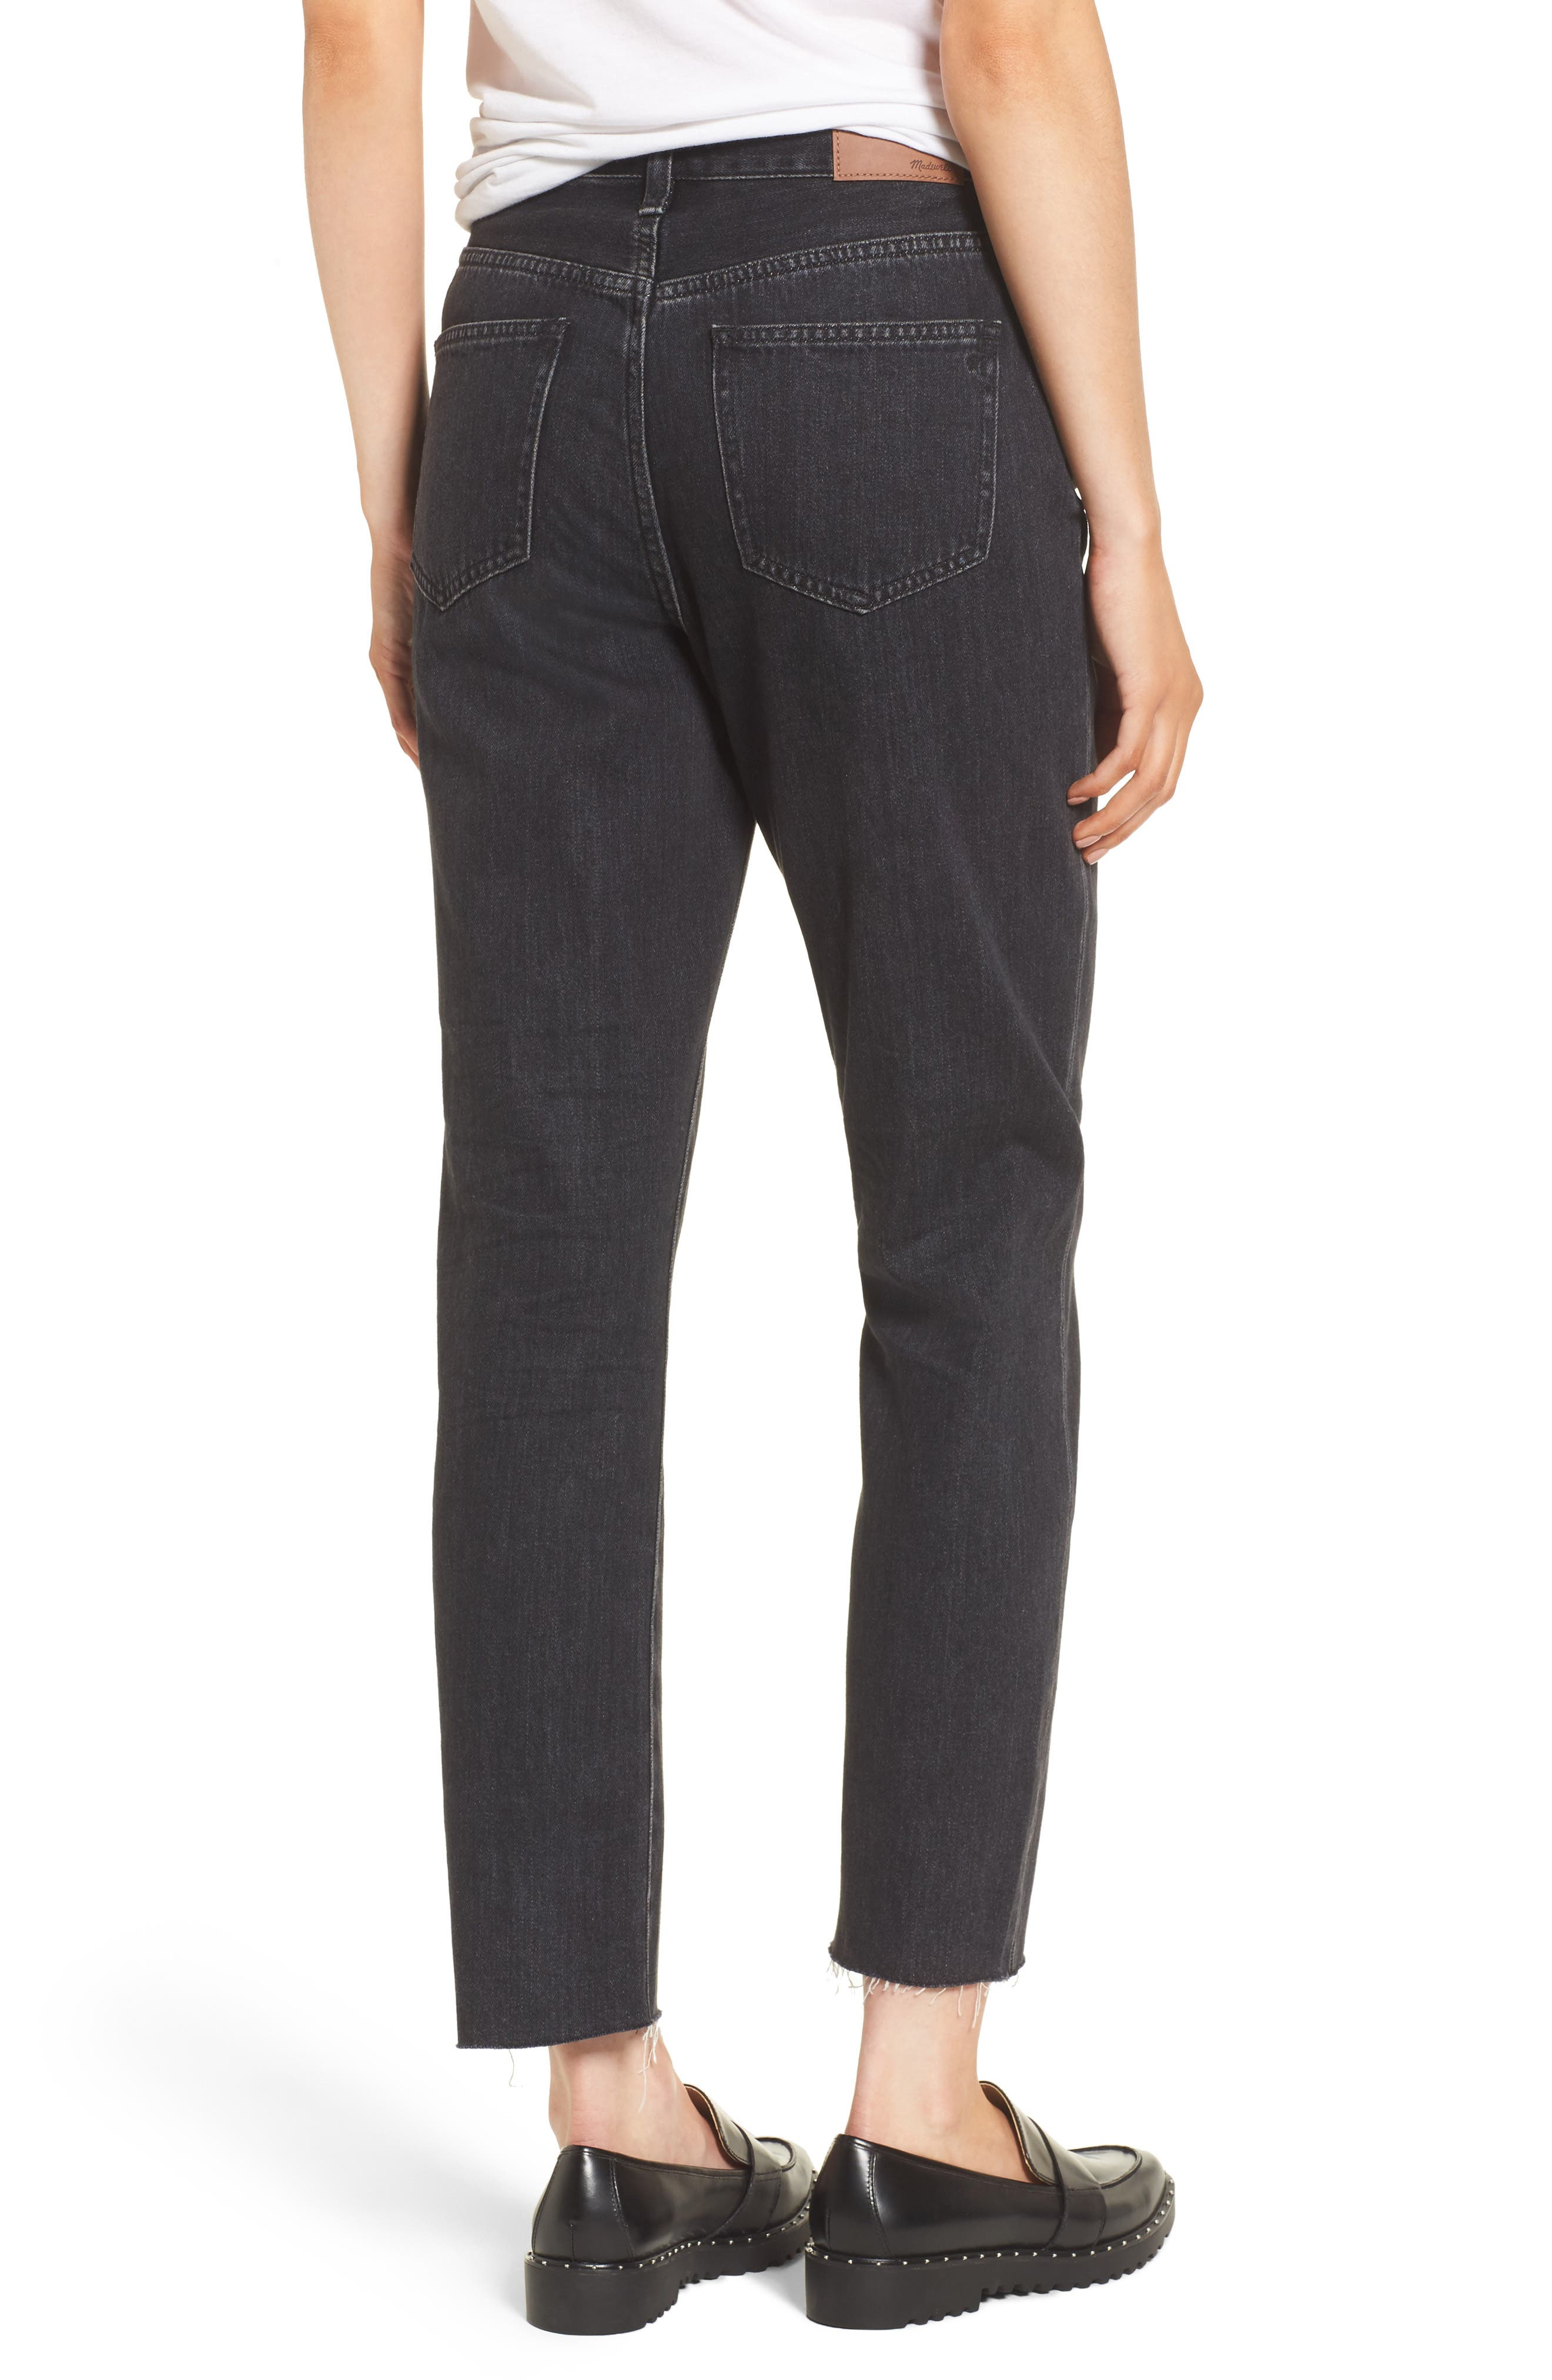 The Perfect Summer 11-Inch High Waist Ankle Straight Leg Jeans,                             Alternate thumbnail 2, color,                             009